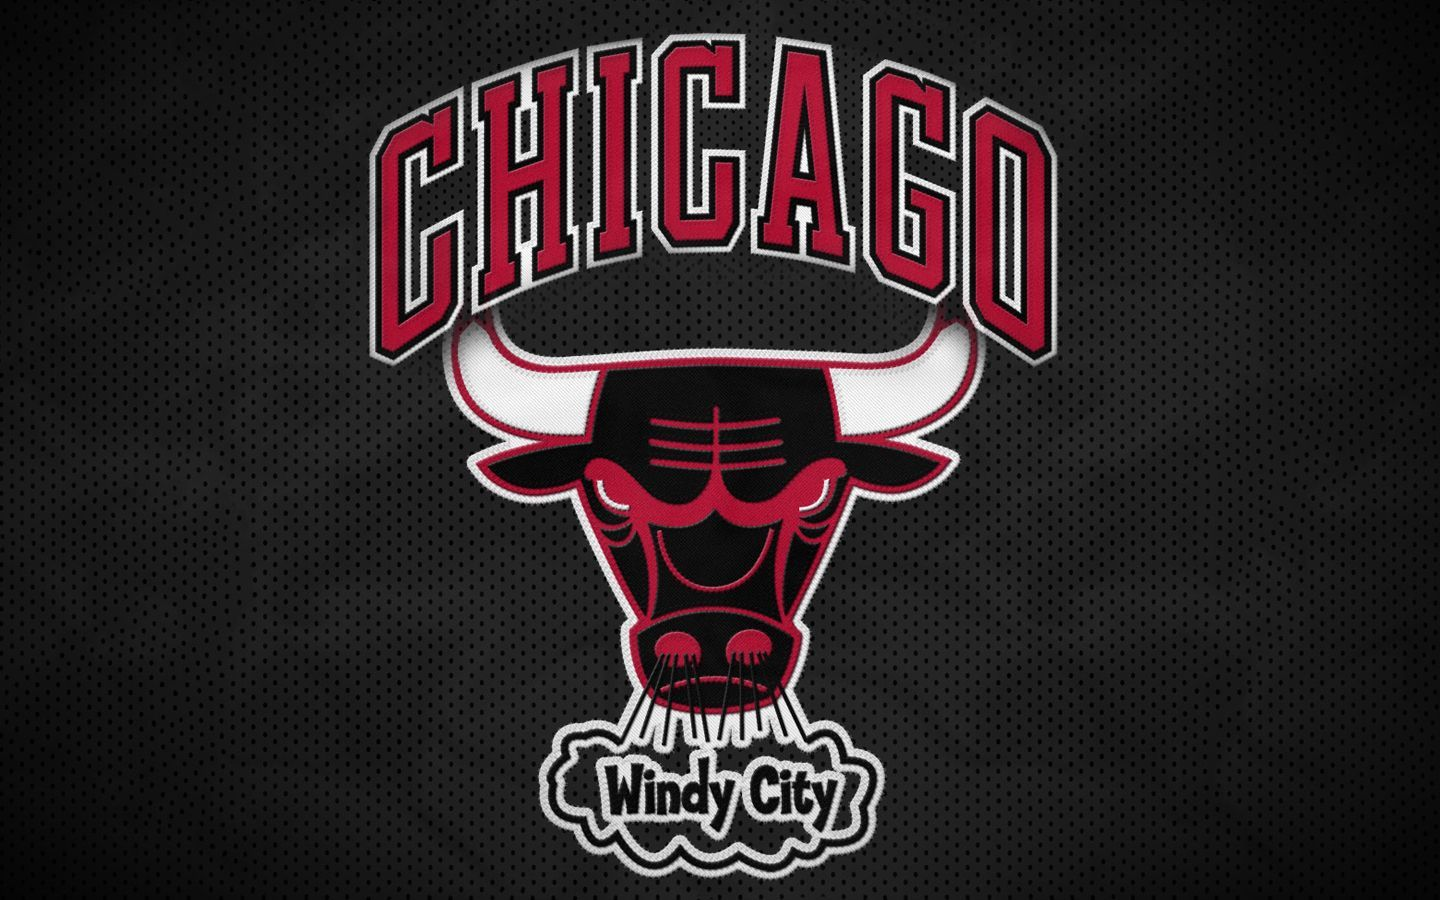 1440x900 - Chicago Bulls HD 7